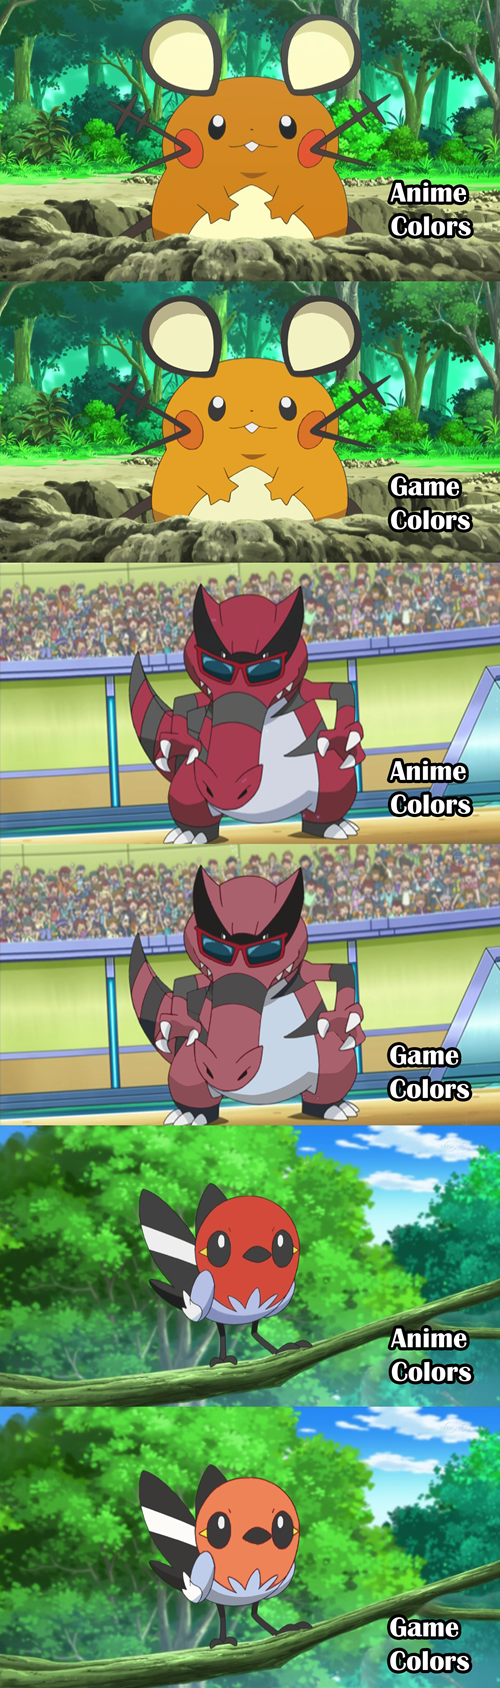 Pokémon Colors in the Anime Vs. the Games